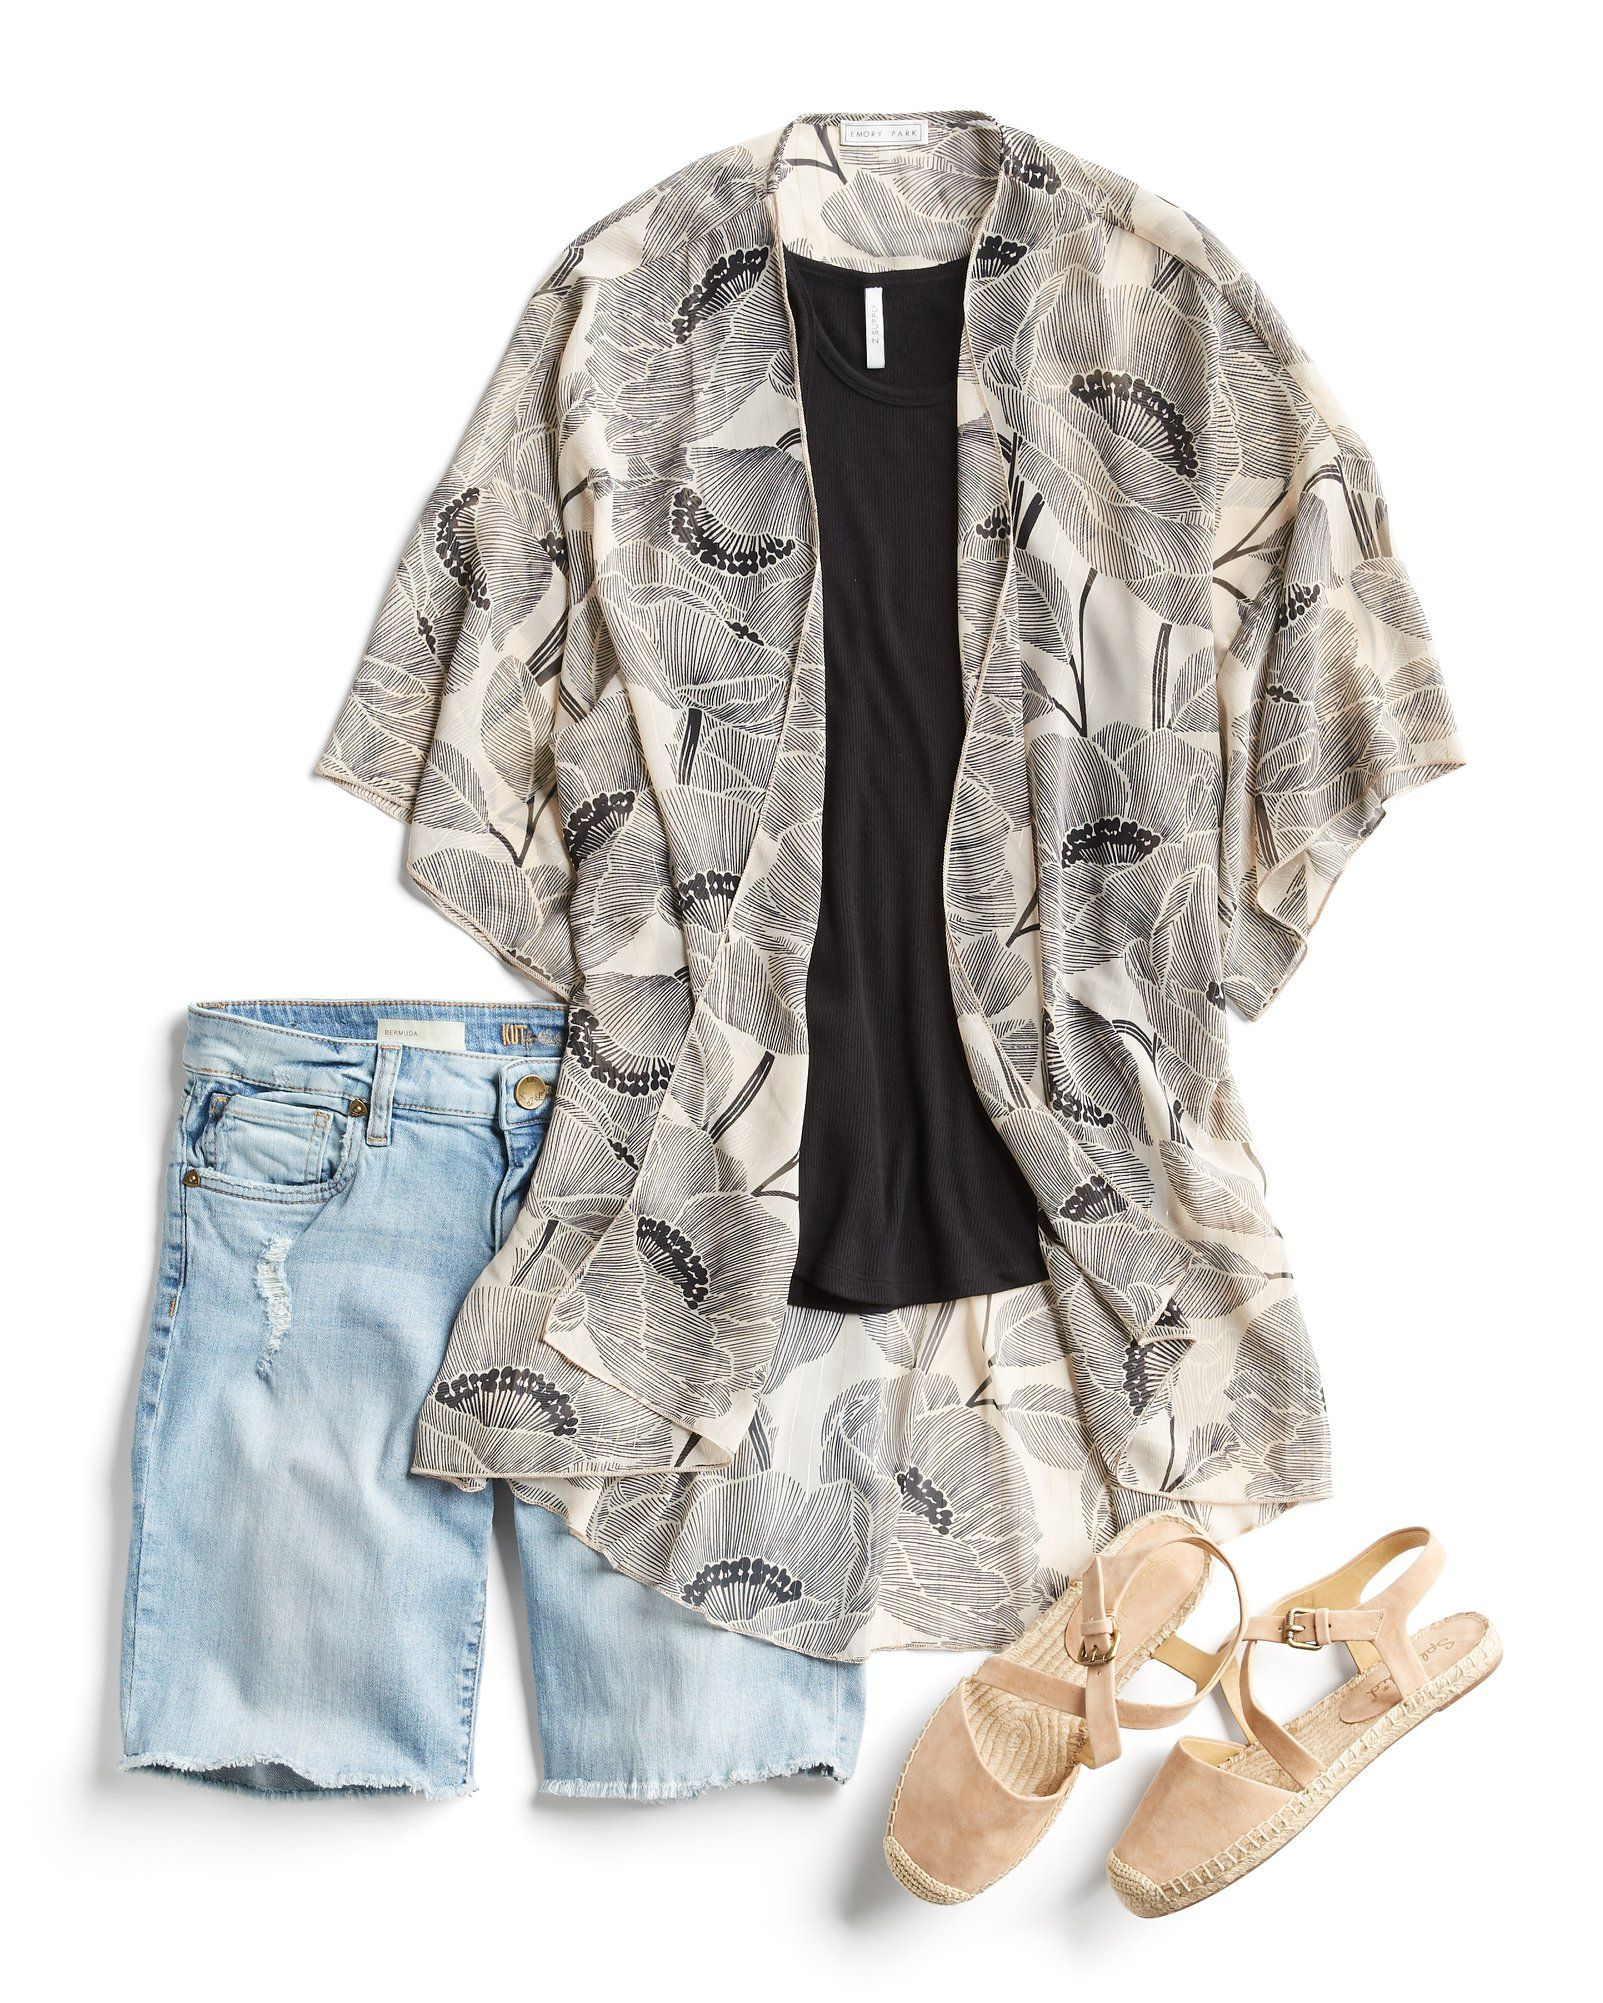 Fashion week Wear you Trendswould nude tones for girls